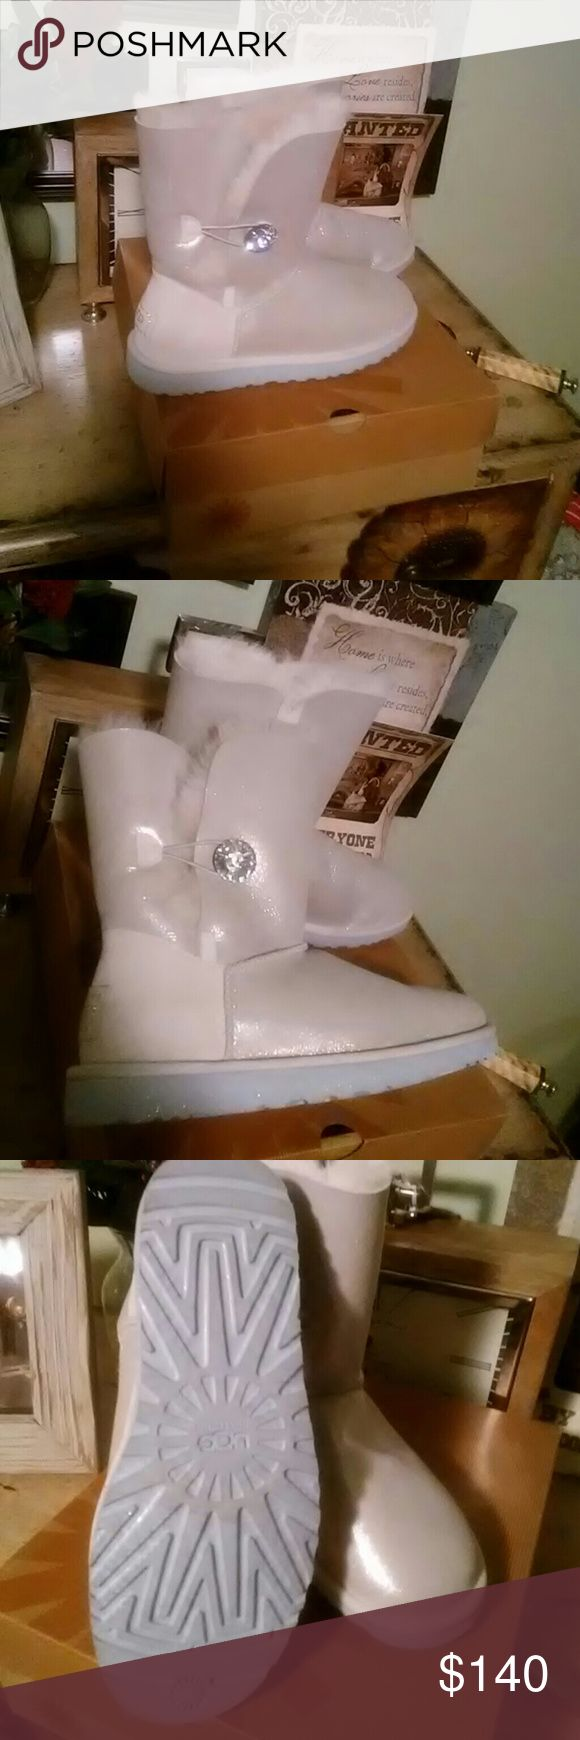 ?? Authentic Eggs Boots Metallic silver with stone leather with swede. Genuine sheepskin lining. Have very light glitter over the hold boot . uggs Shoes Ankle Boots & Booties